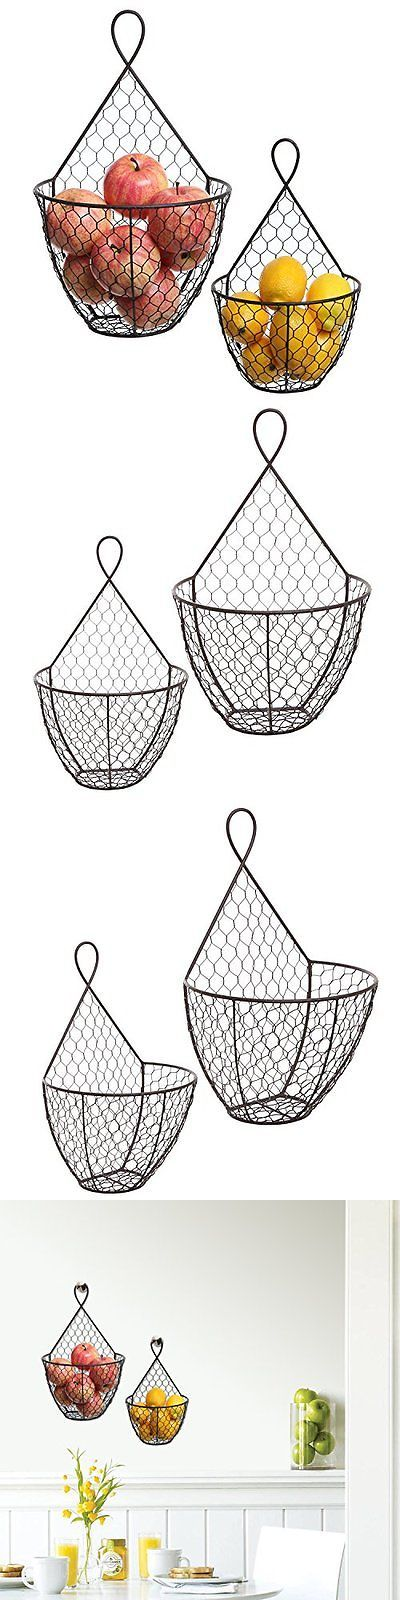 Wall Pockets 115979: (Set Of 2) Wall Mounted Brown Country Rustic Style Chicken Wire Metal Baskets -> BUY IT NOW ONLY: $47.56 on eBay!